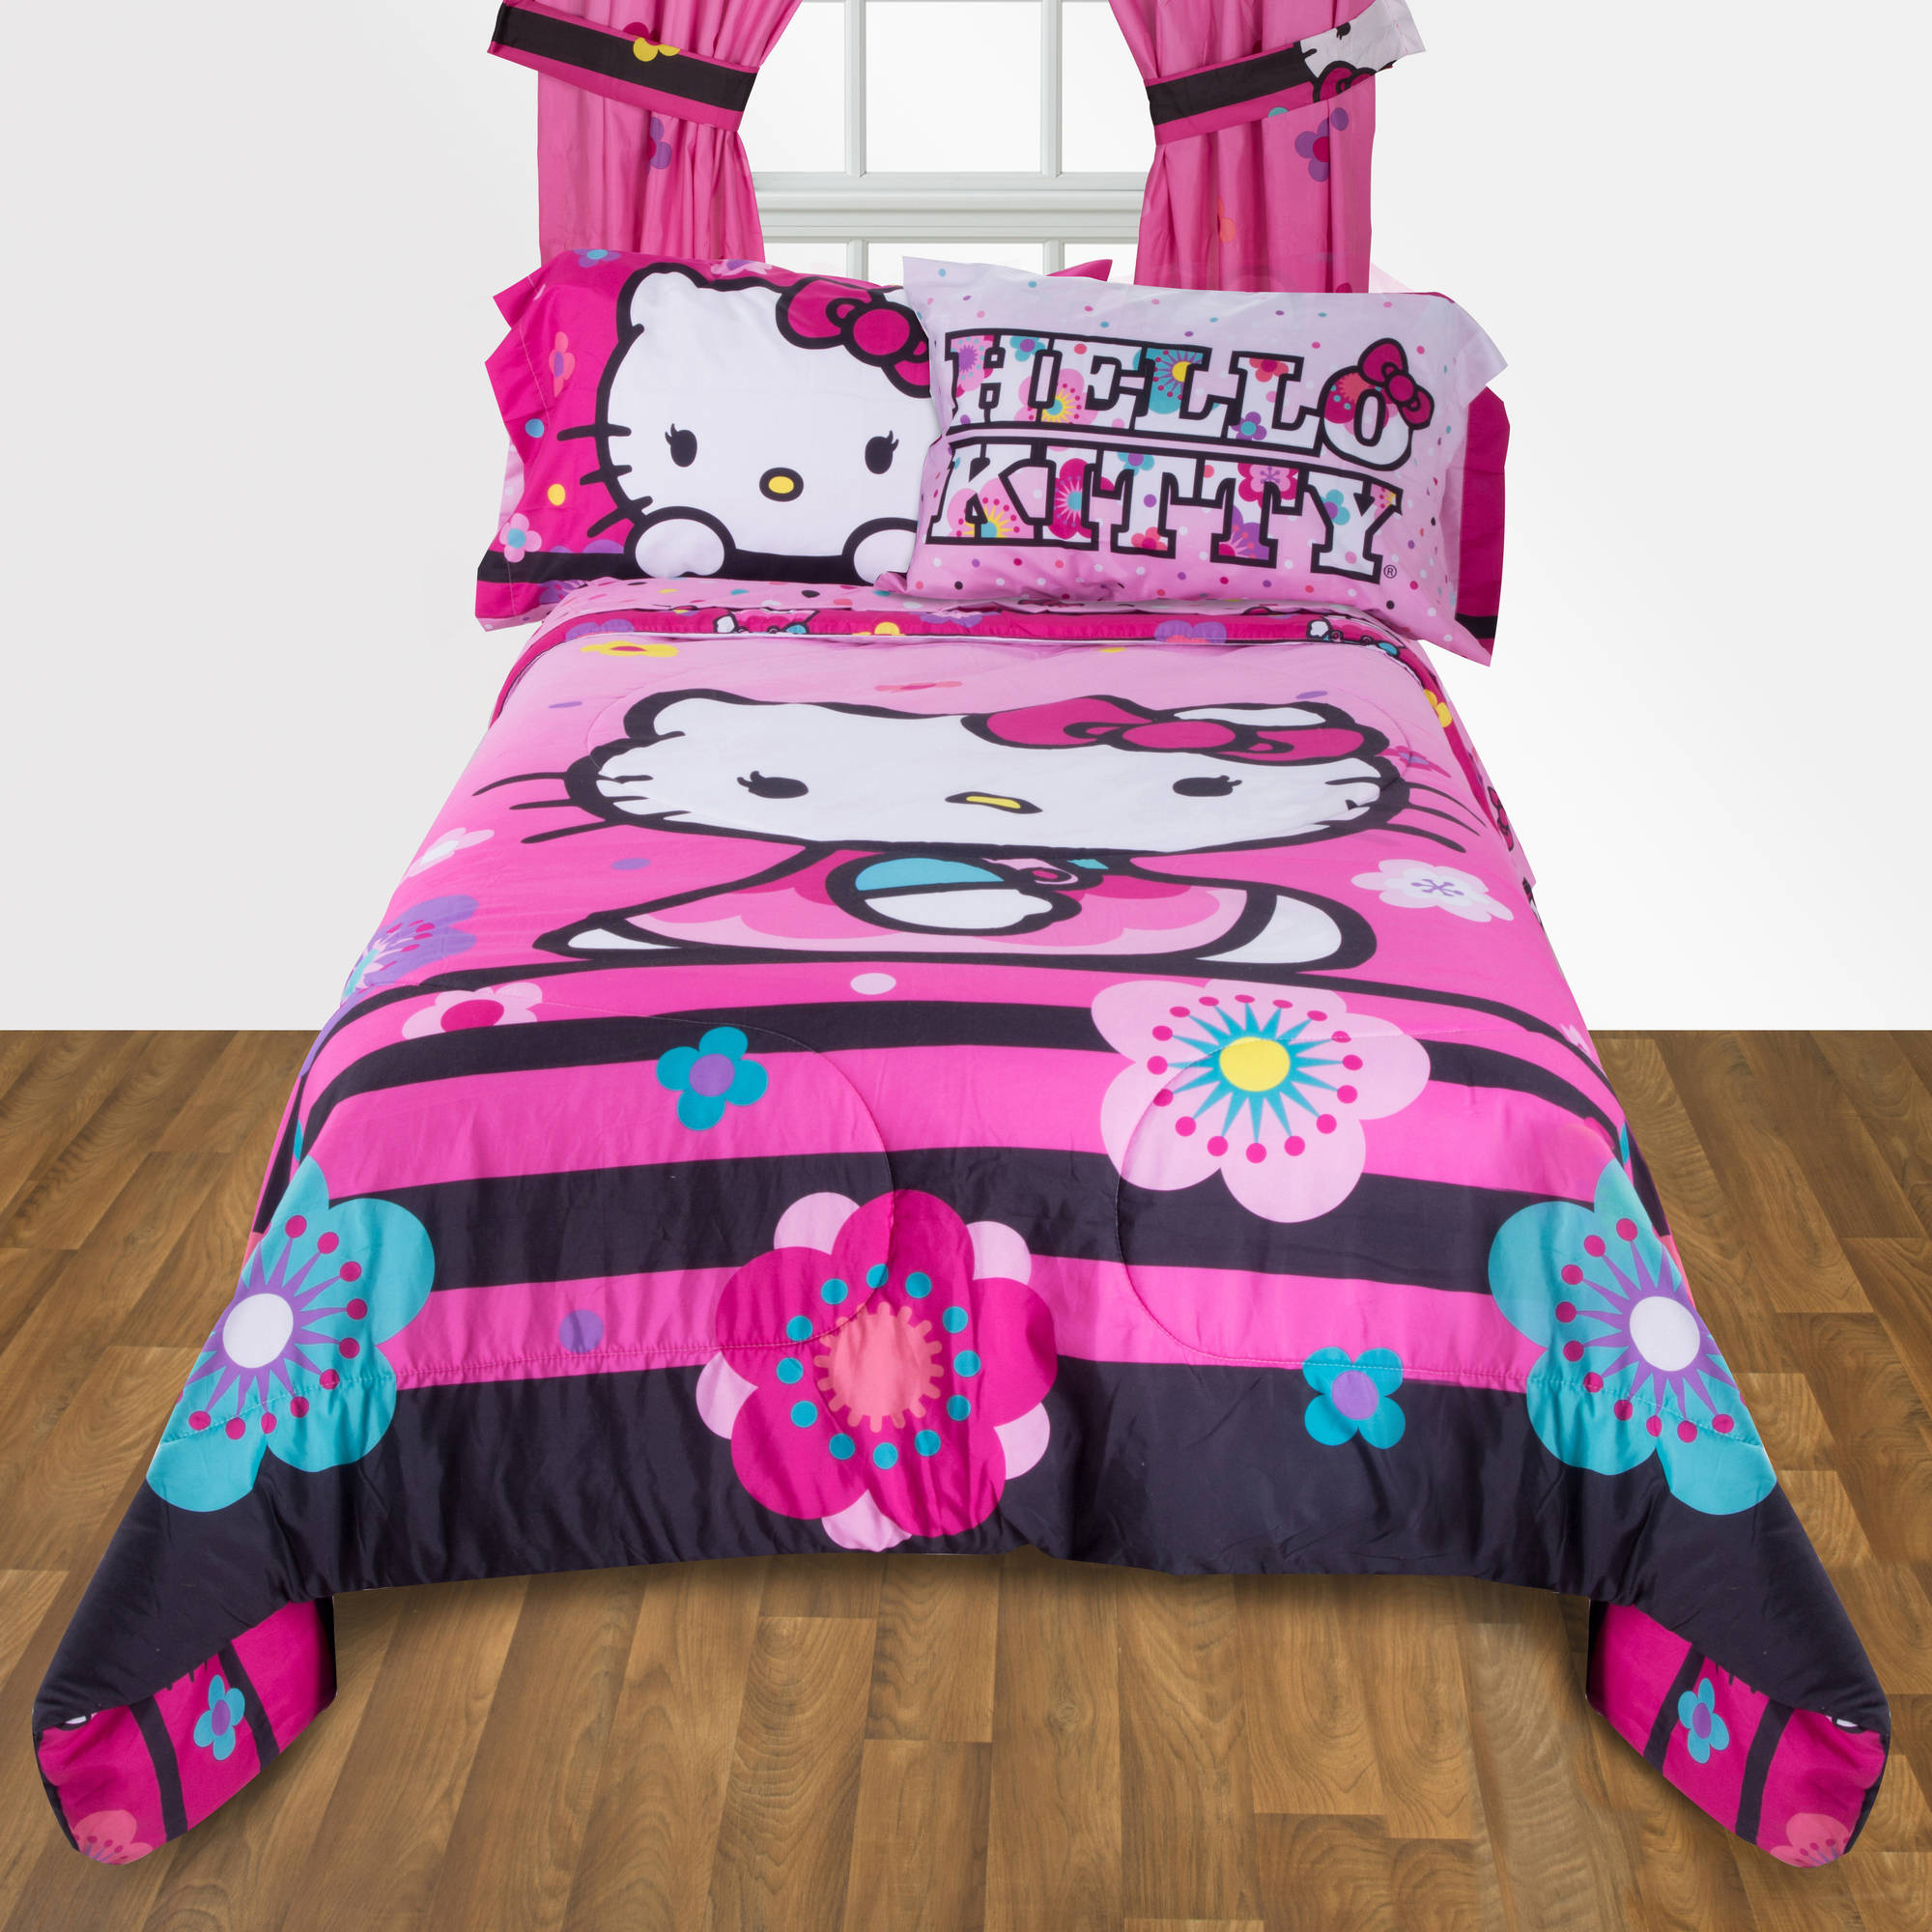 Pink hello kitty bedsheet - Hello Kitty Floral Ombre Reversible Twin Full Bedding Comforter Walmart Com